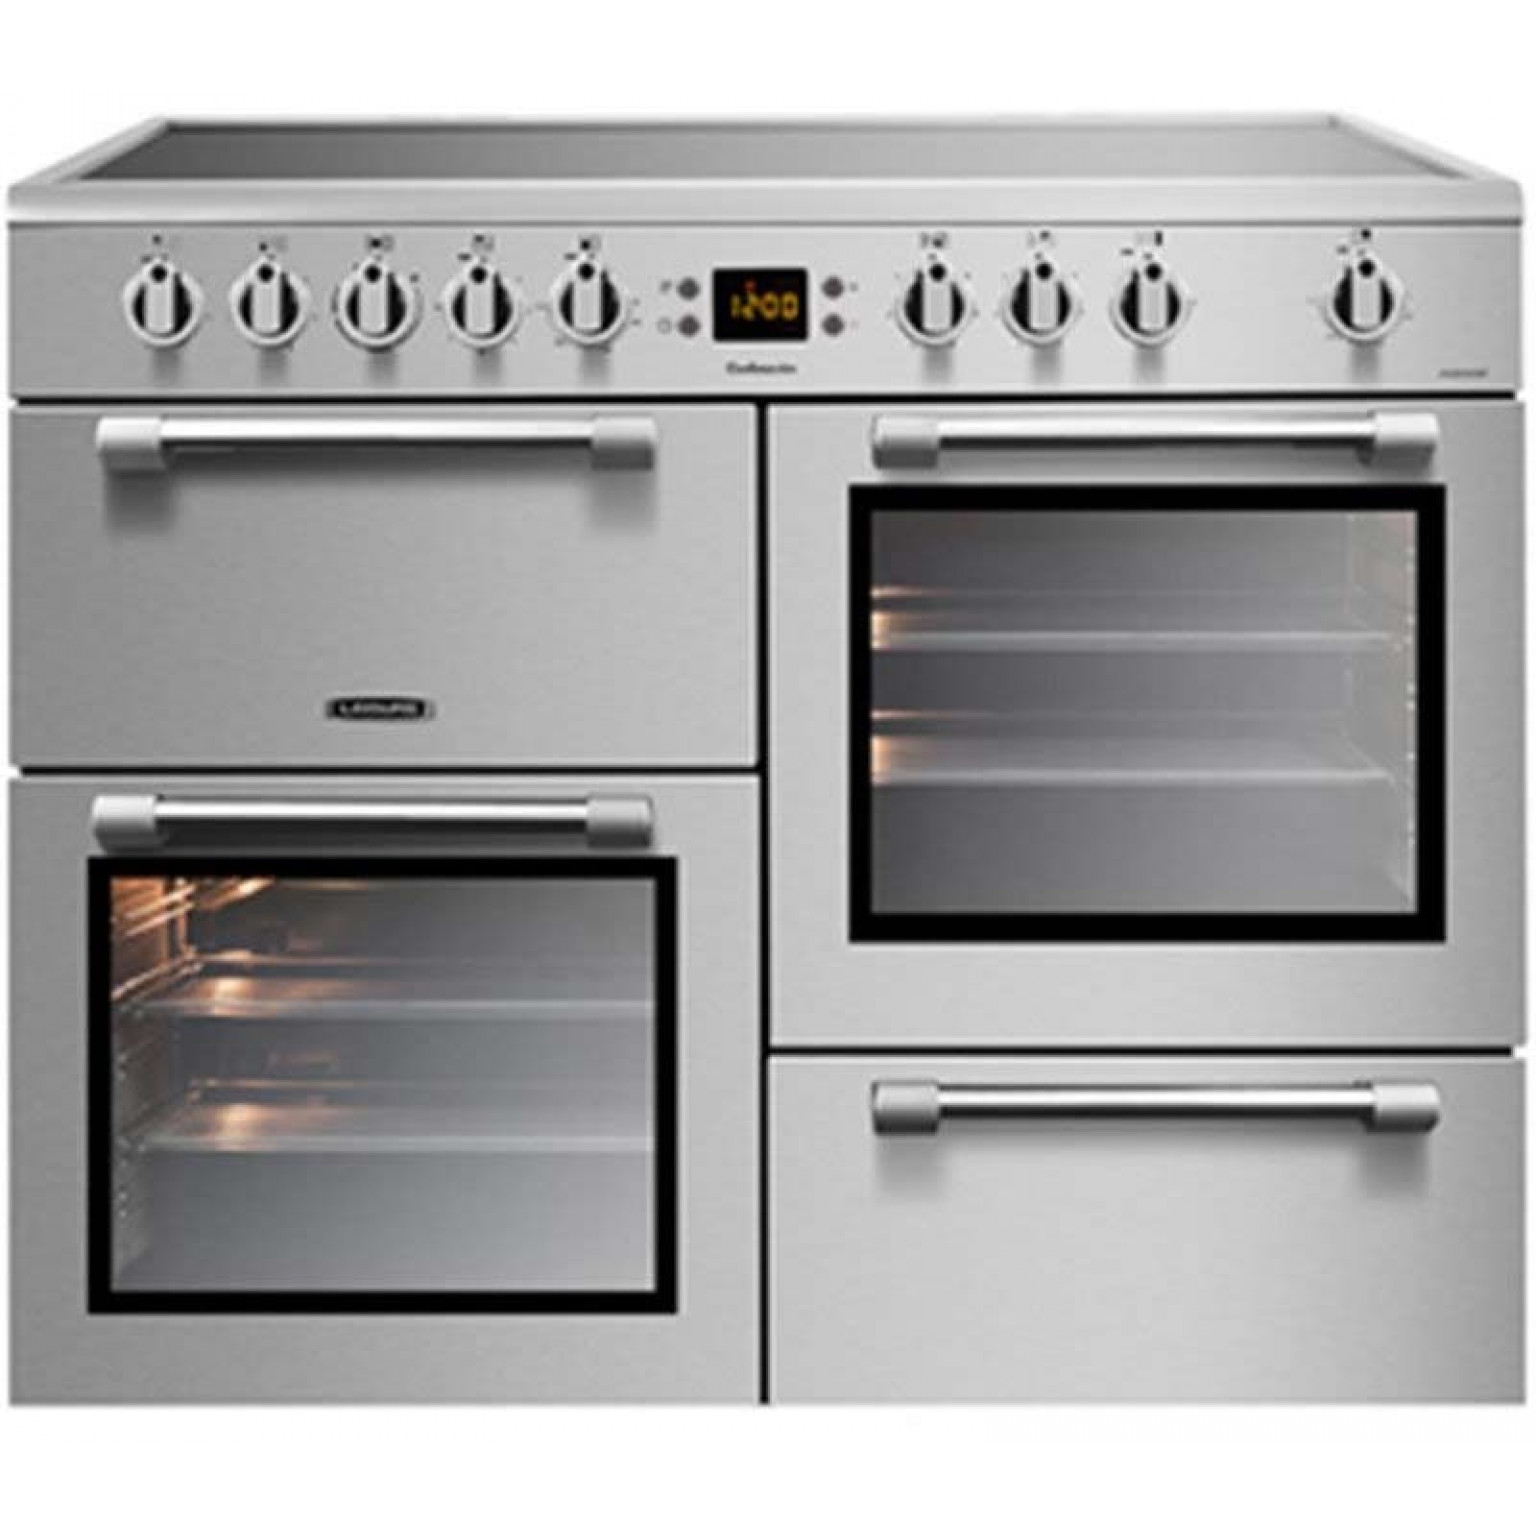 LEISURE 'Cookmaster' 100cm Electric Range Cooker CK100C210X